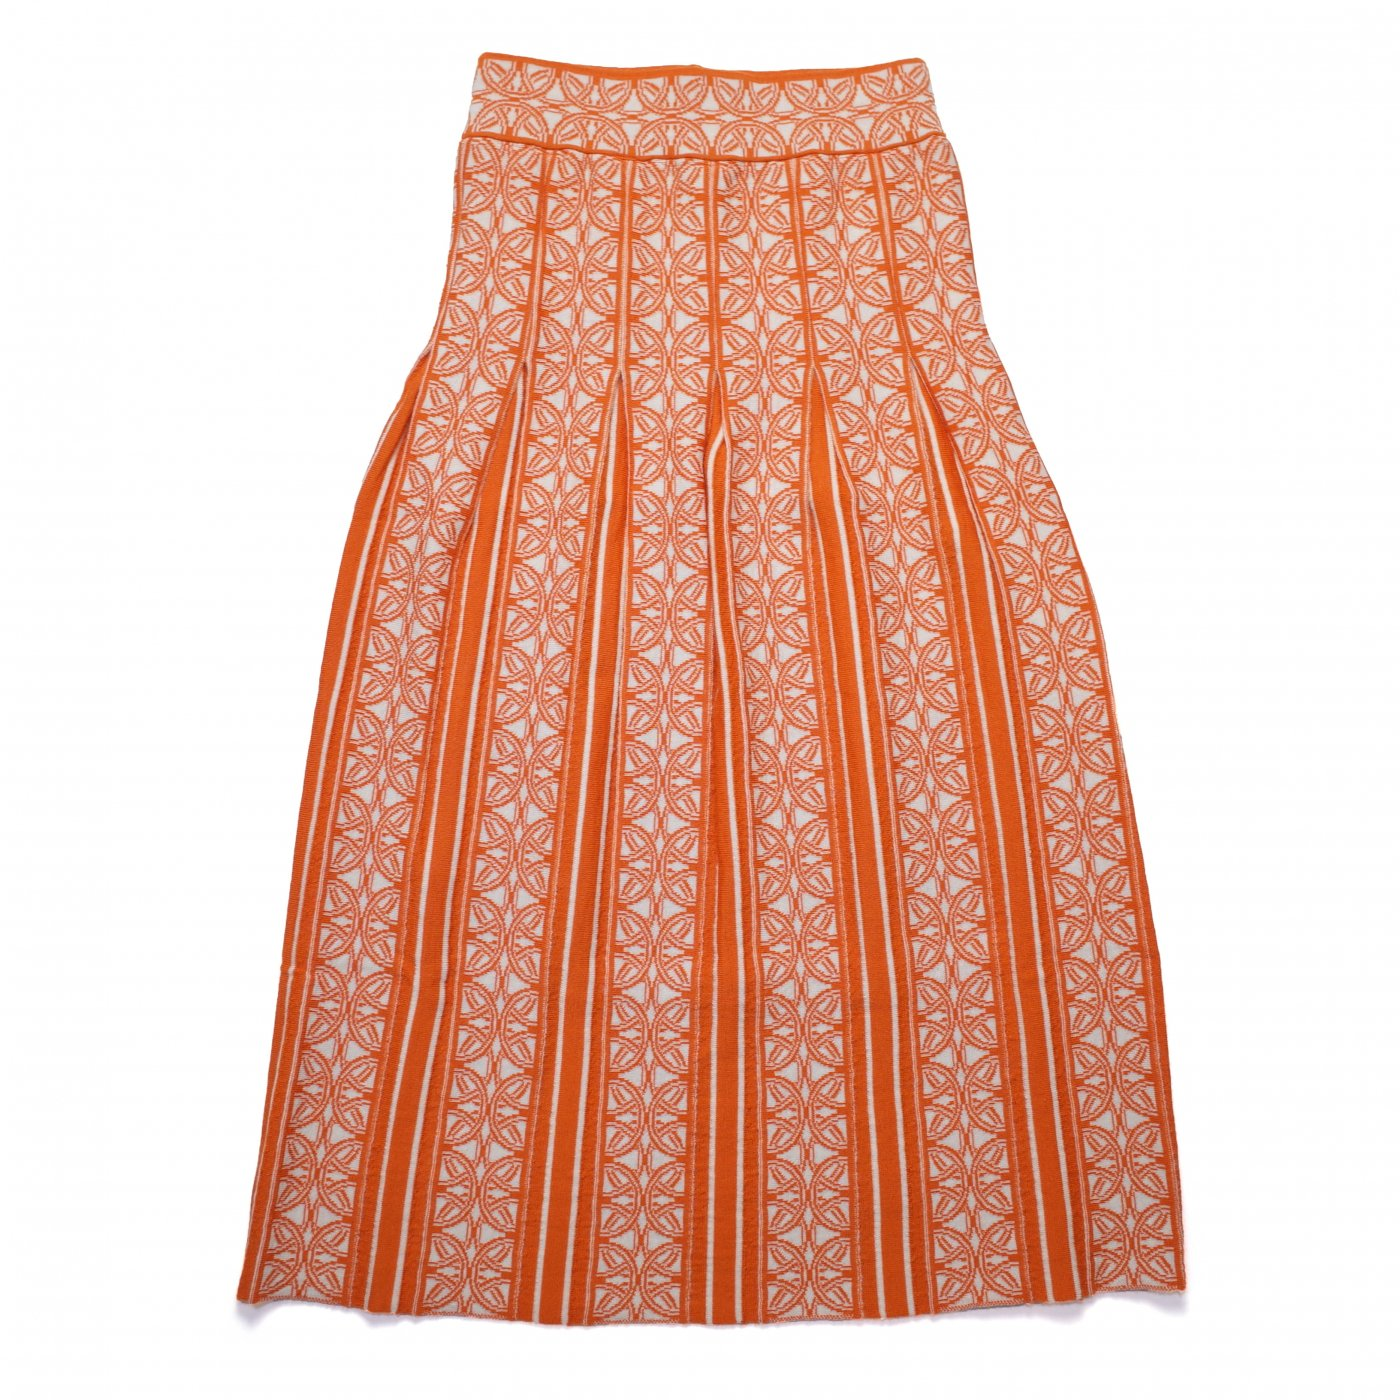 TAN 2018AW -PATTERNED SK/ORANGE-women's